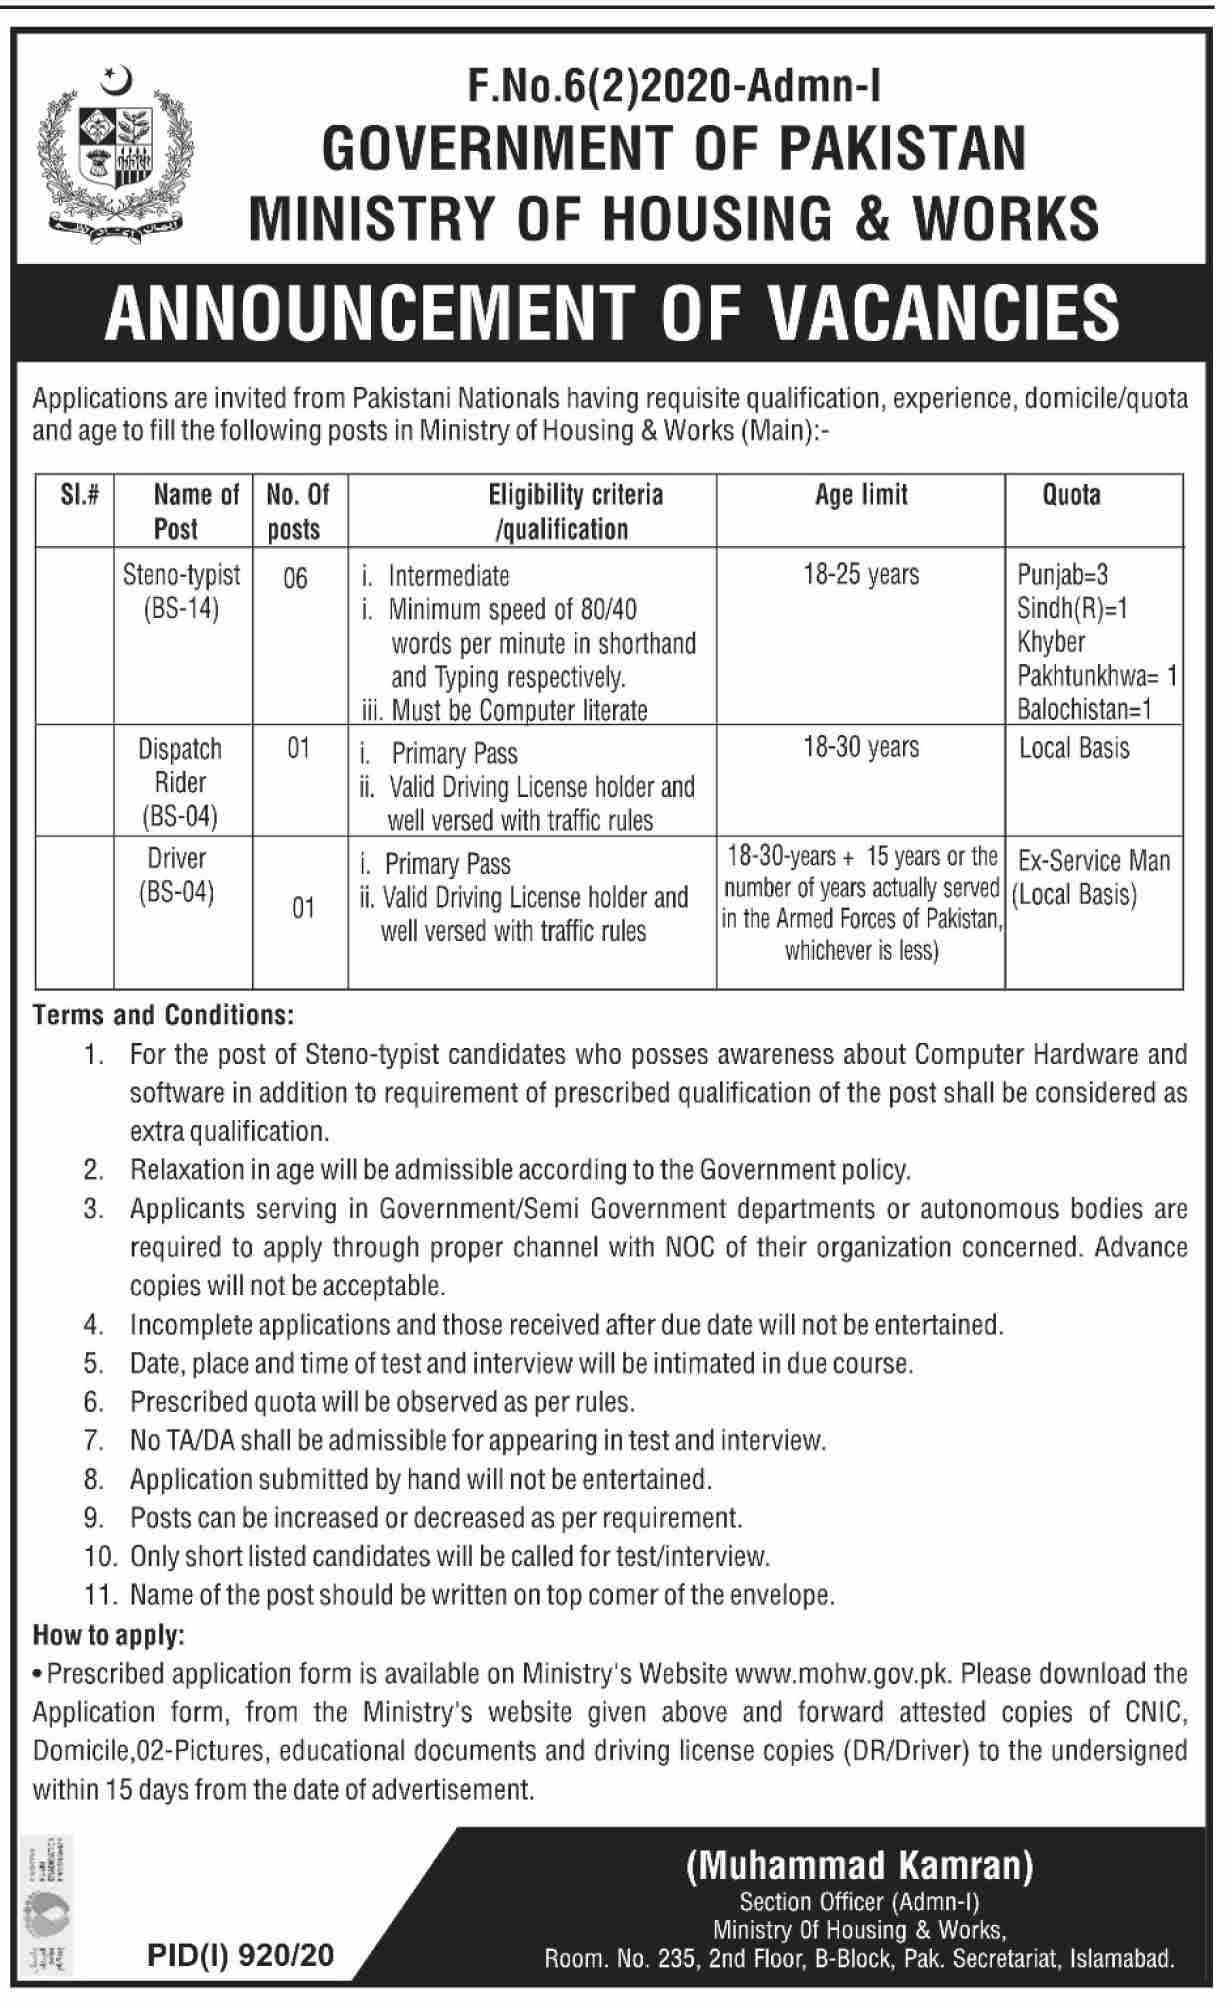 Ministry of Housing & Works Jobs August 2020